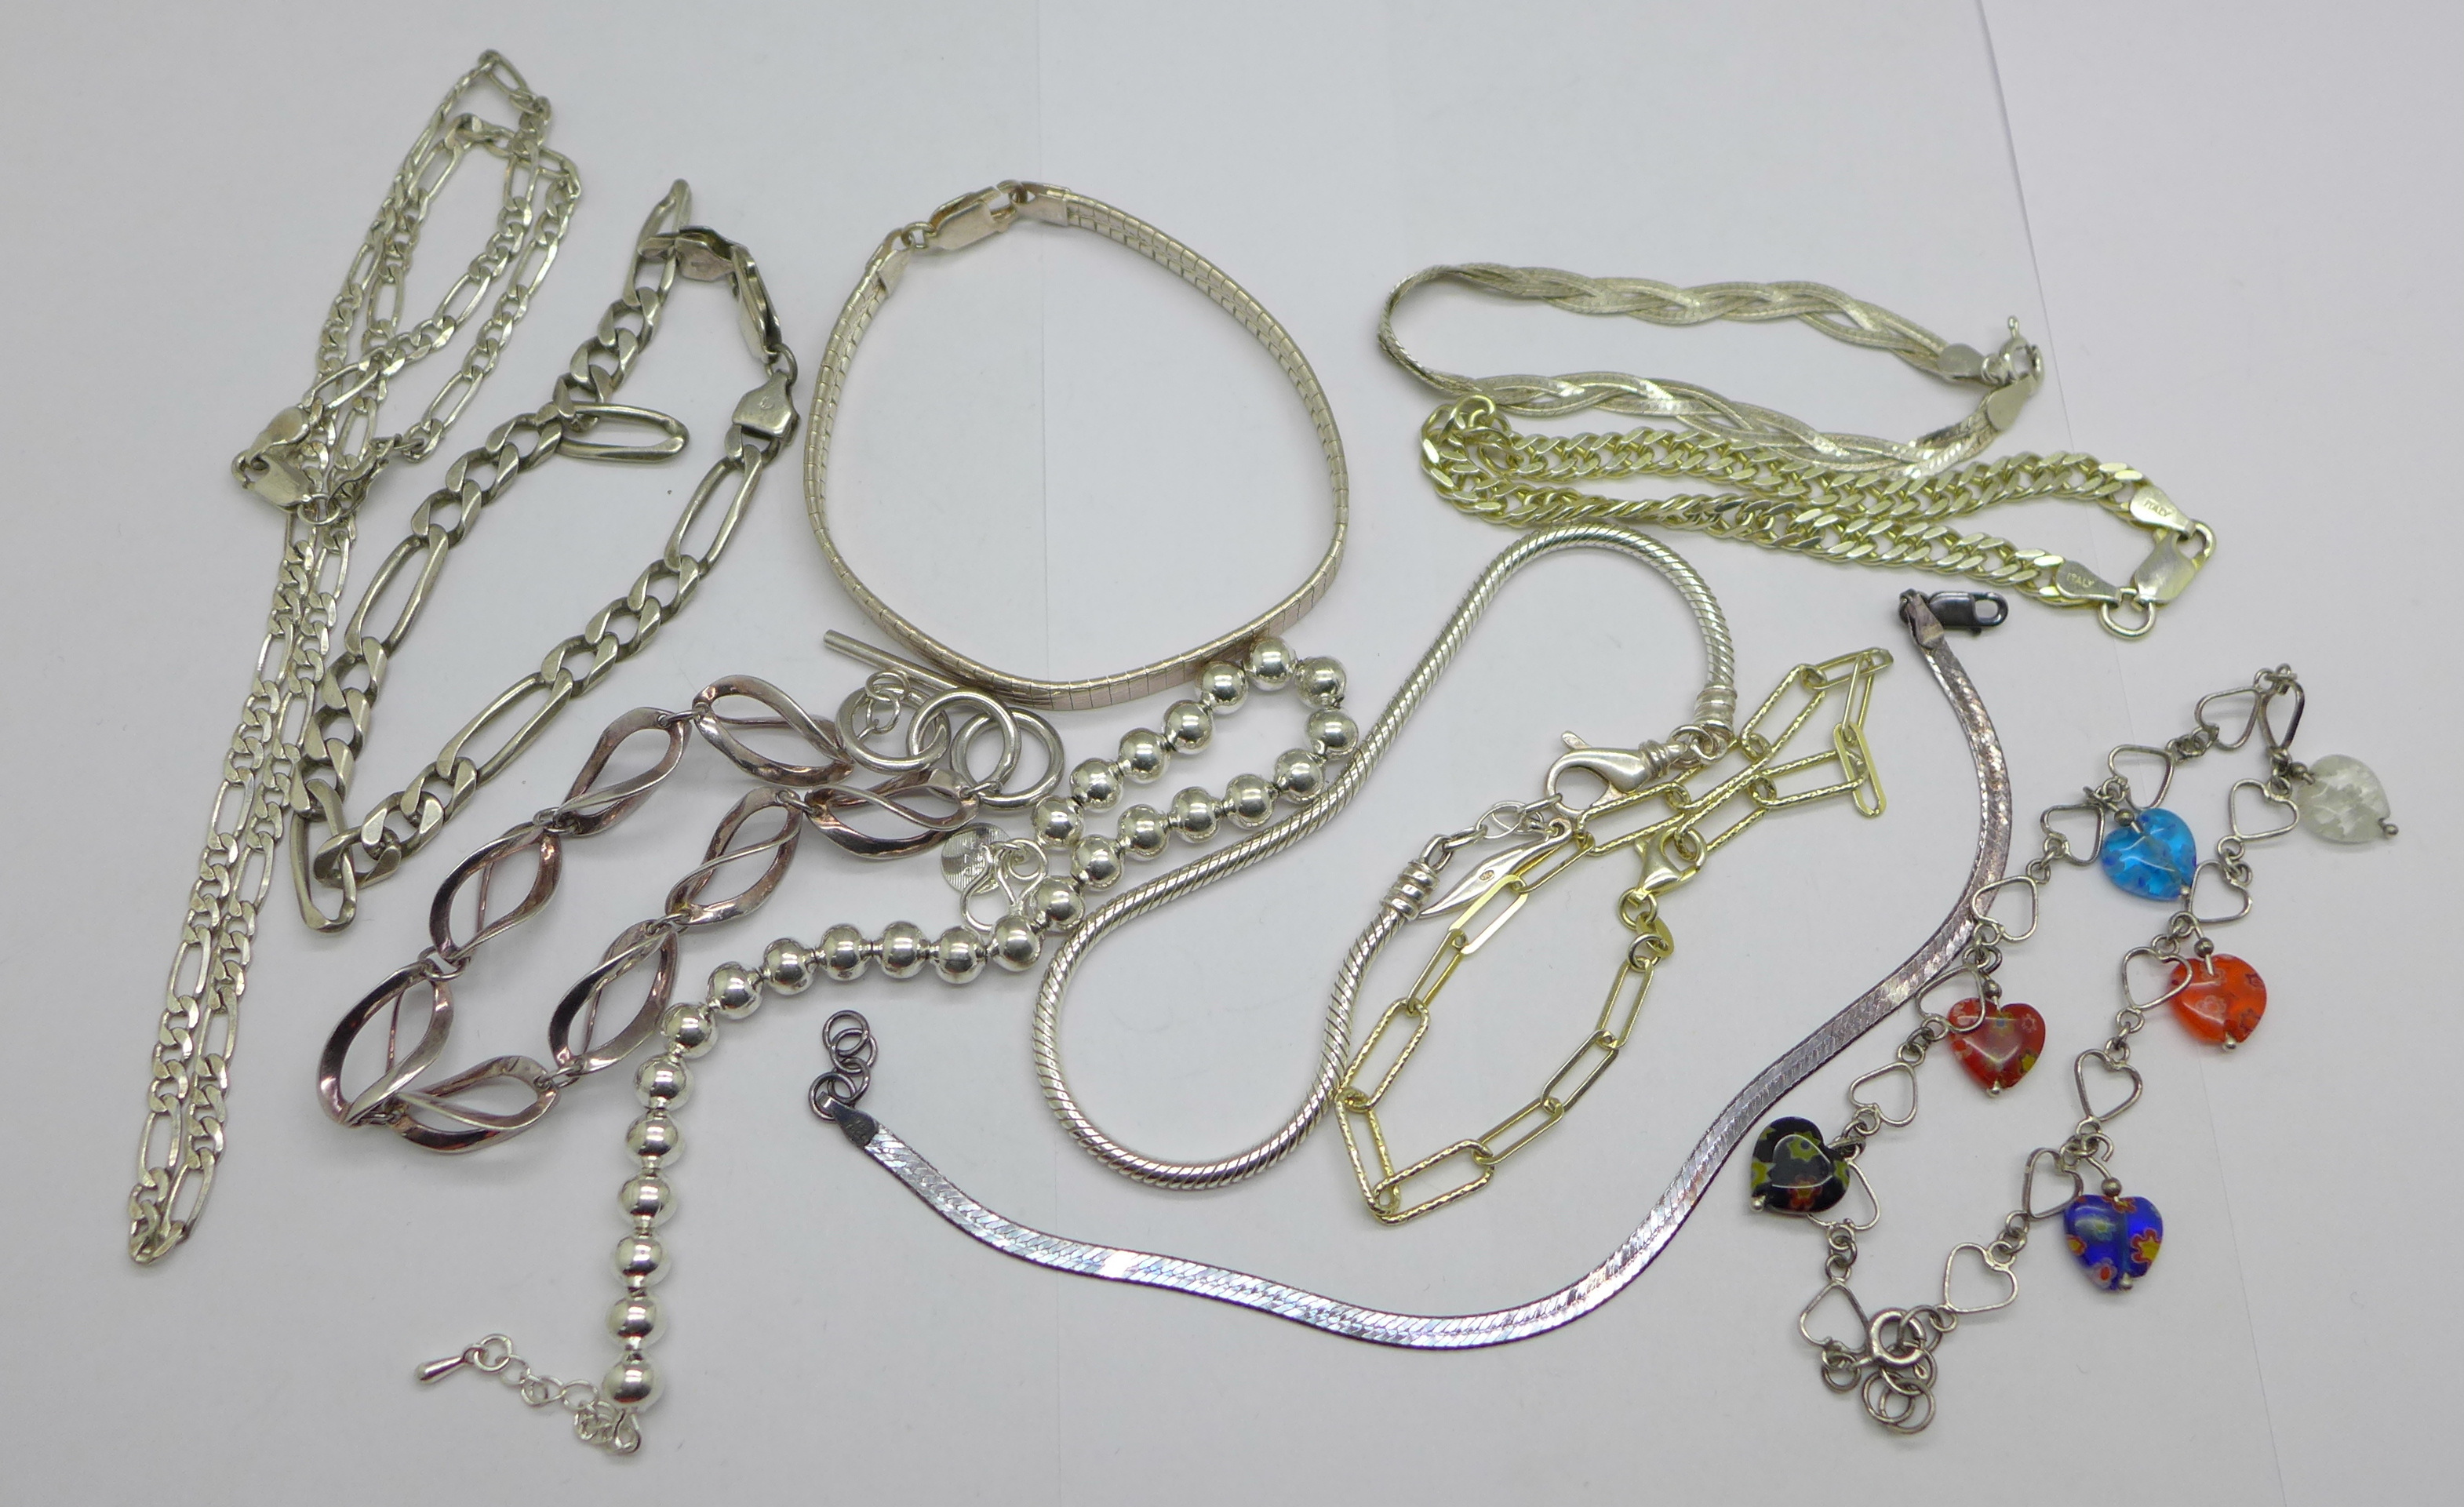 Ten silver bracelets and a silver necklace, 95g